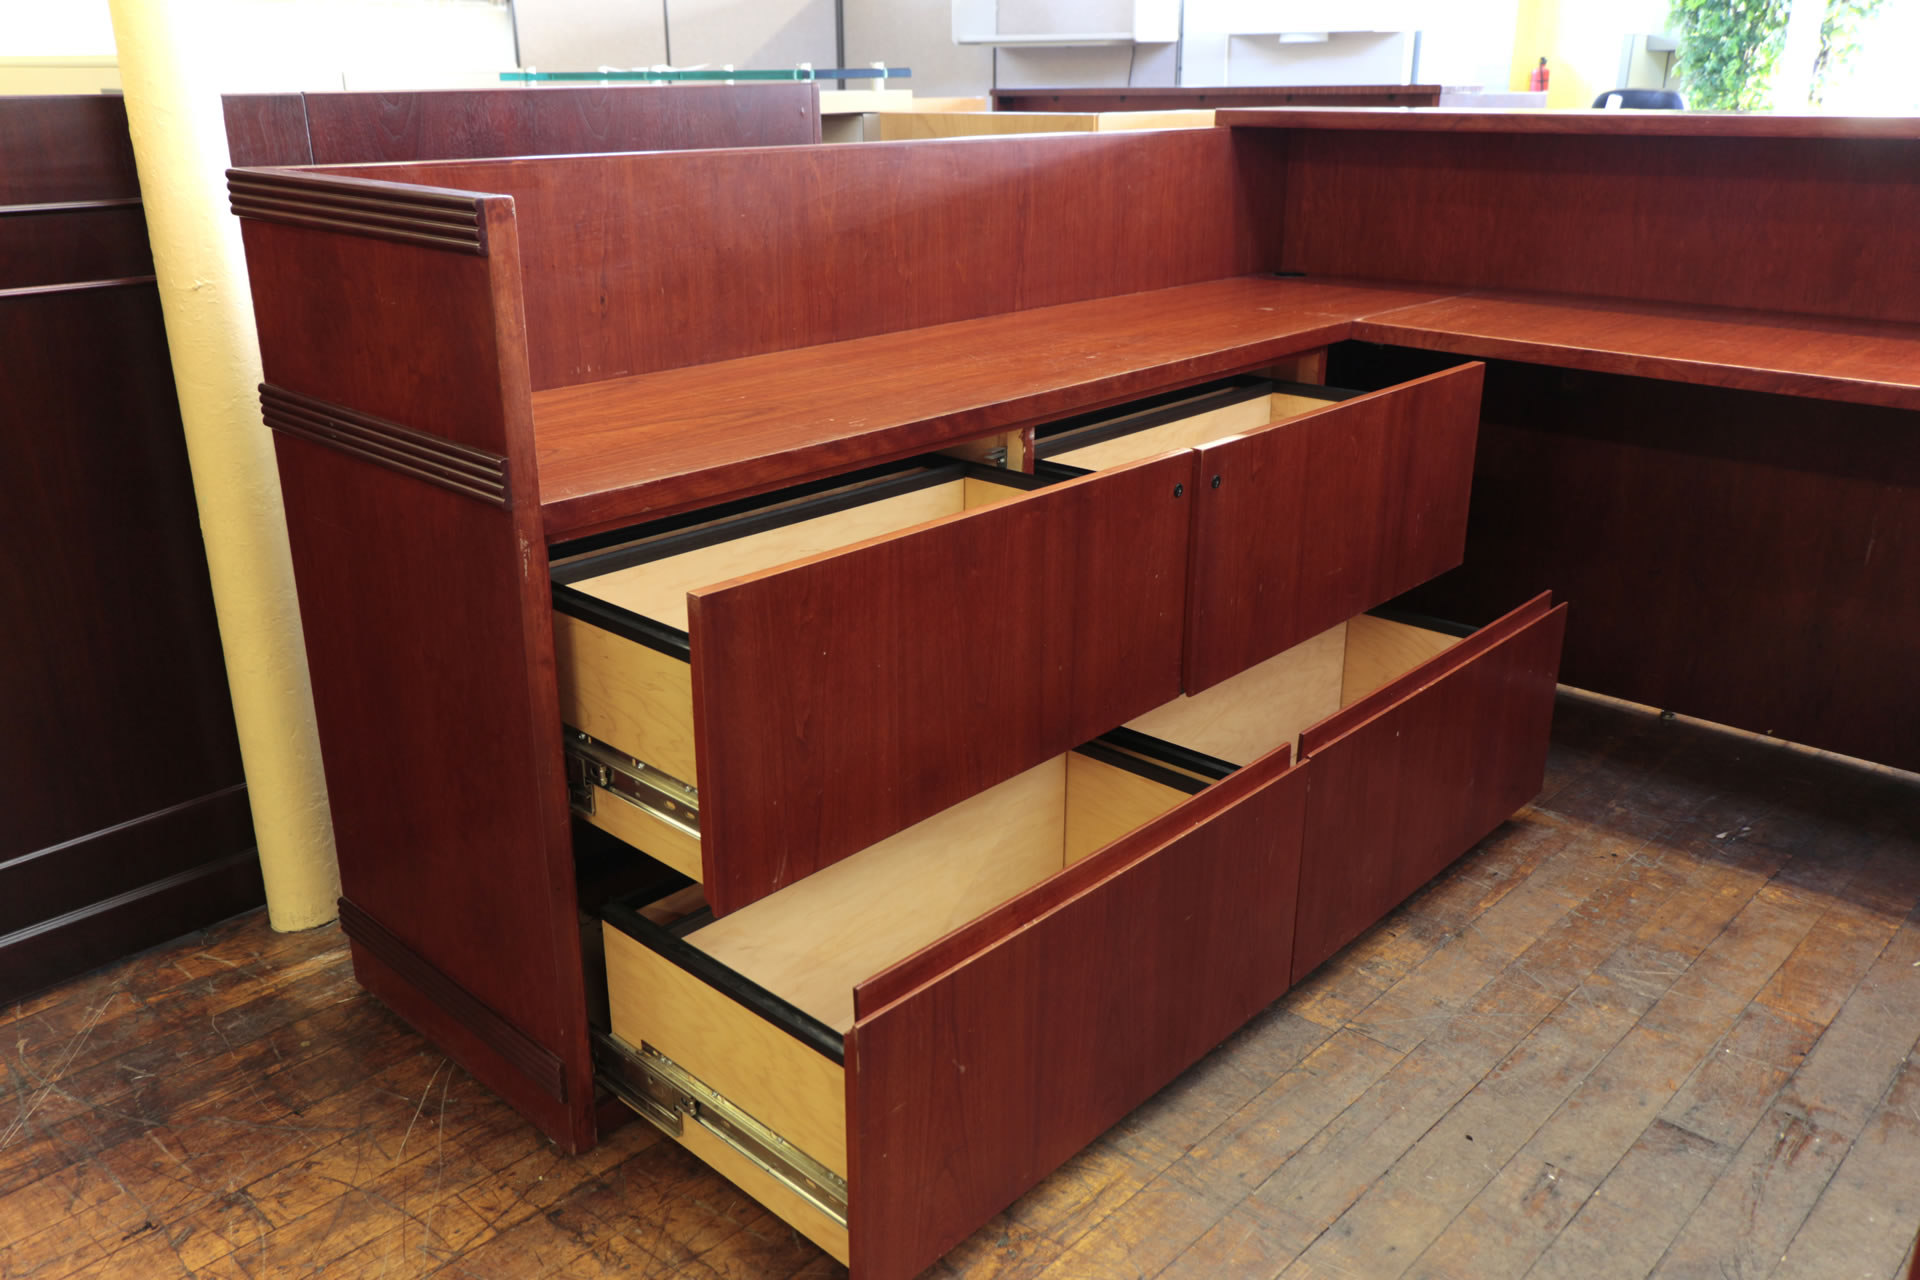 peartreeofficefurniture_peartreeofficefurniture_mg_4864.jpg